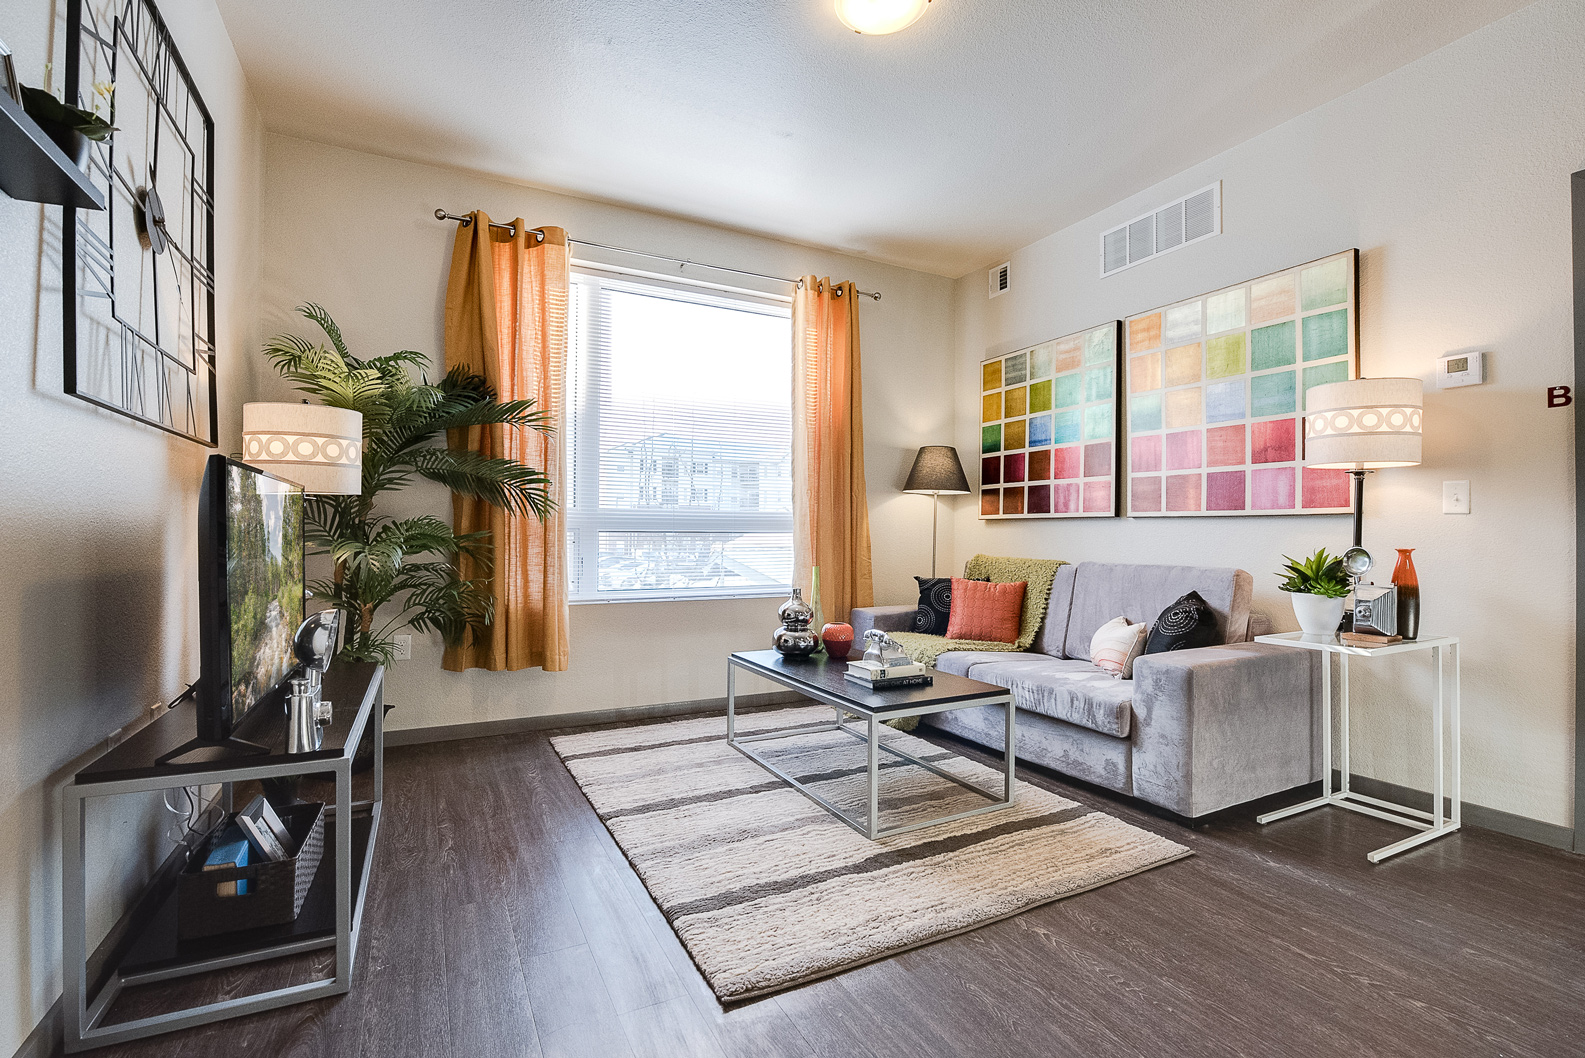 Contemporary AirBnB Home Staging, Twin Cities, MN Home Stagers #117 ~ Staged by Lionheart